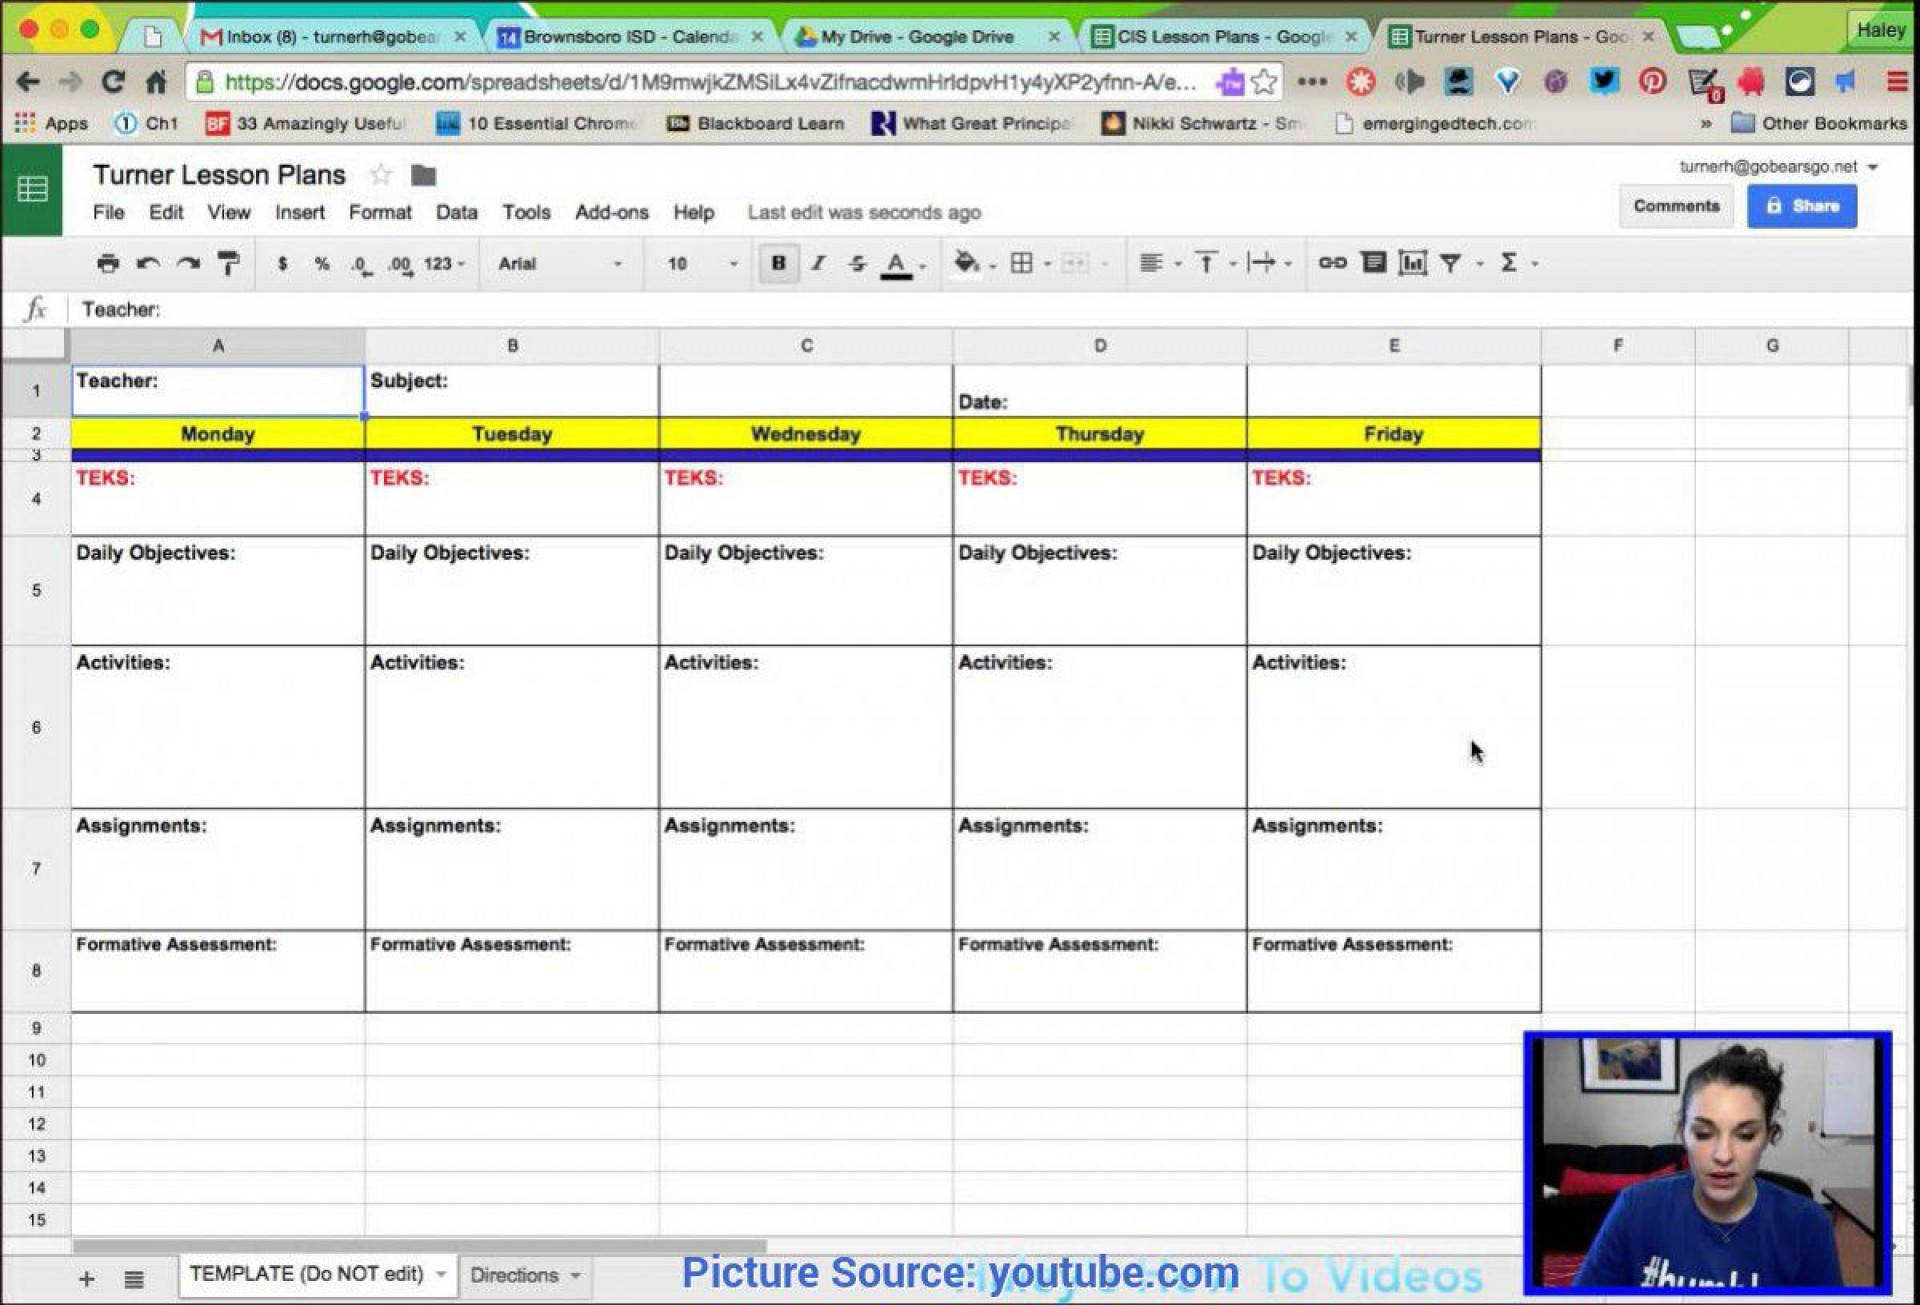 009 Magnificent How To Make A Lesson Plan Template In Google Doc Concept  Docs1920